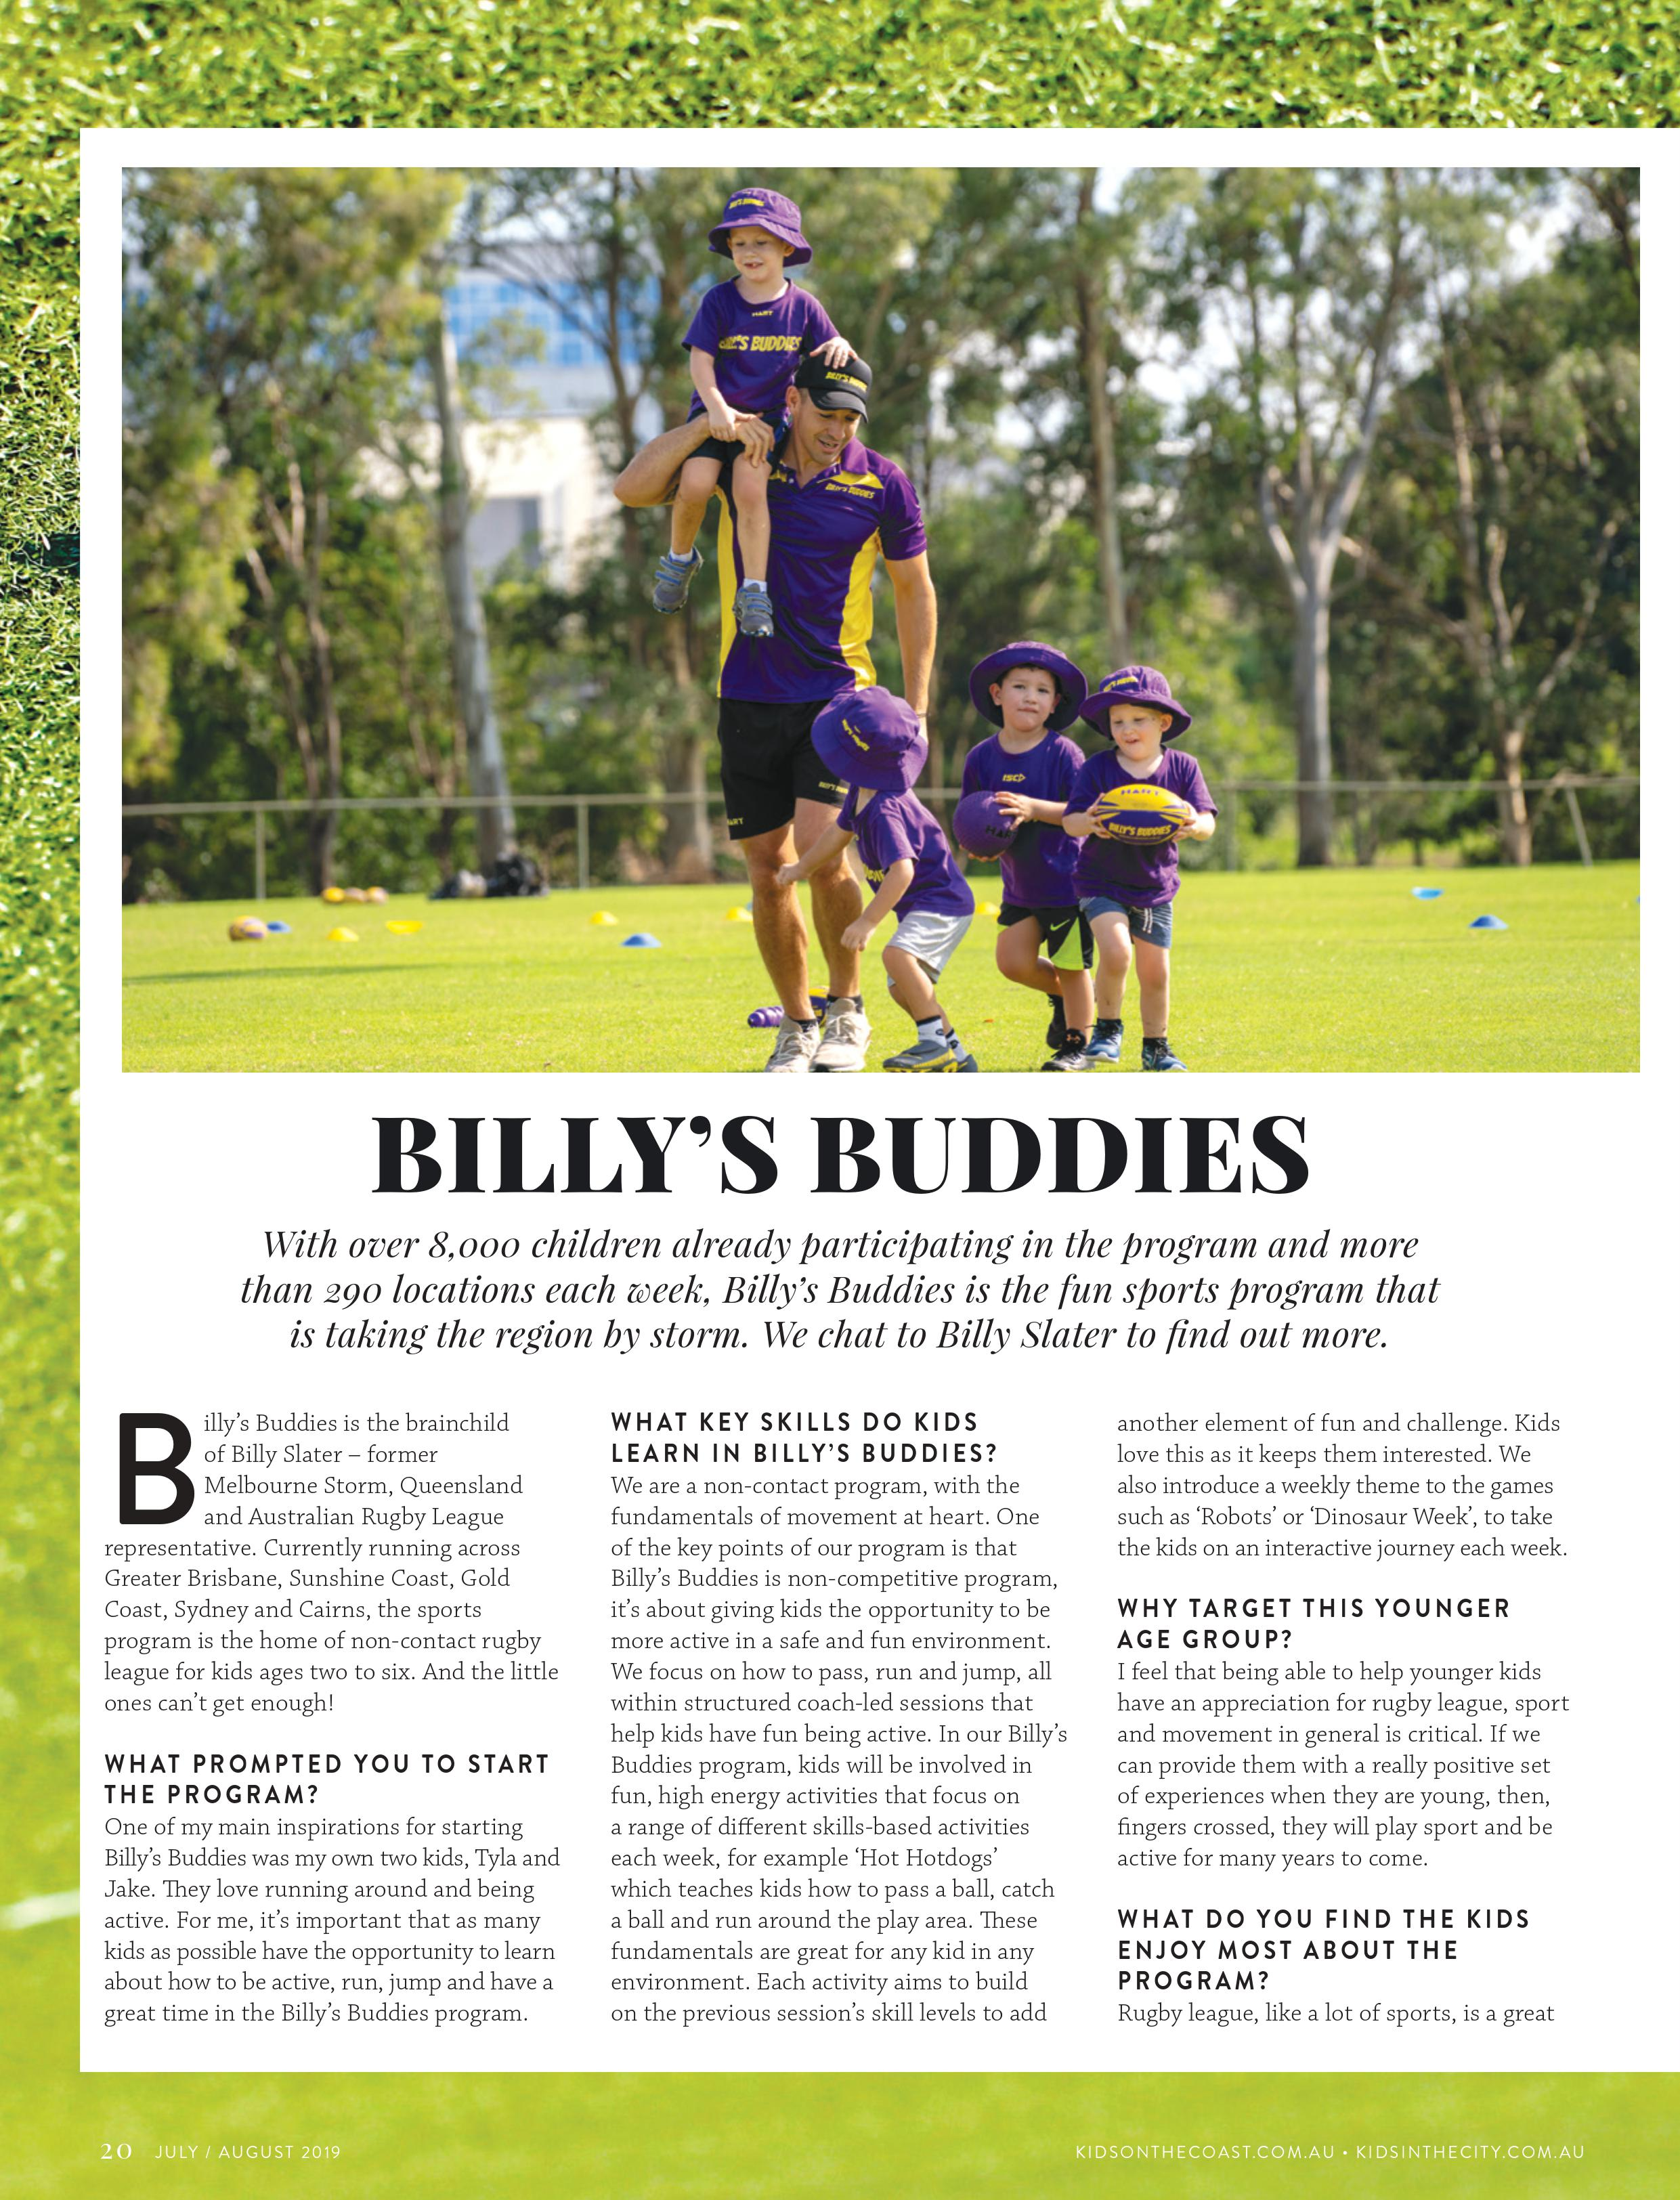 Billy Slater chats to Kids In The City about the Billy's Buddies Program